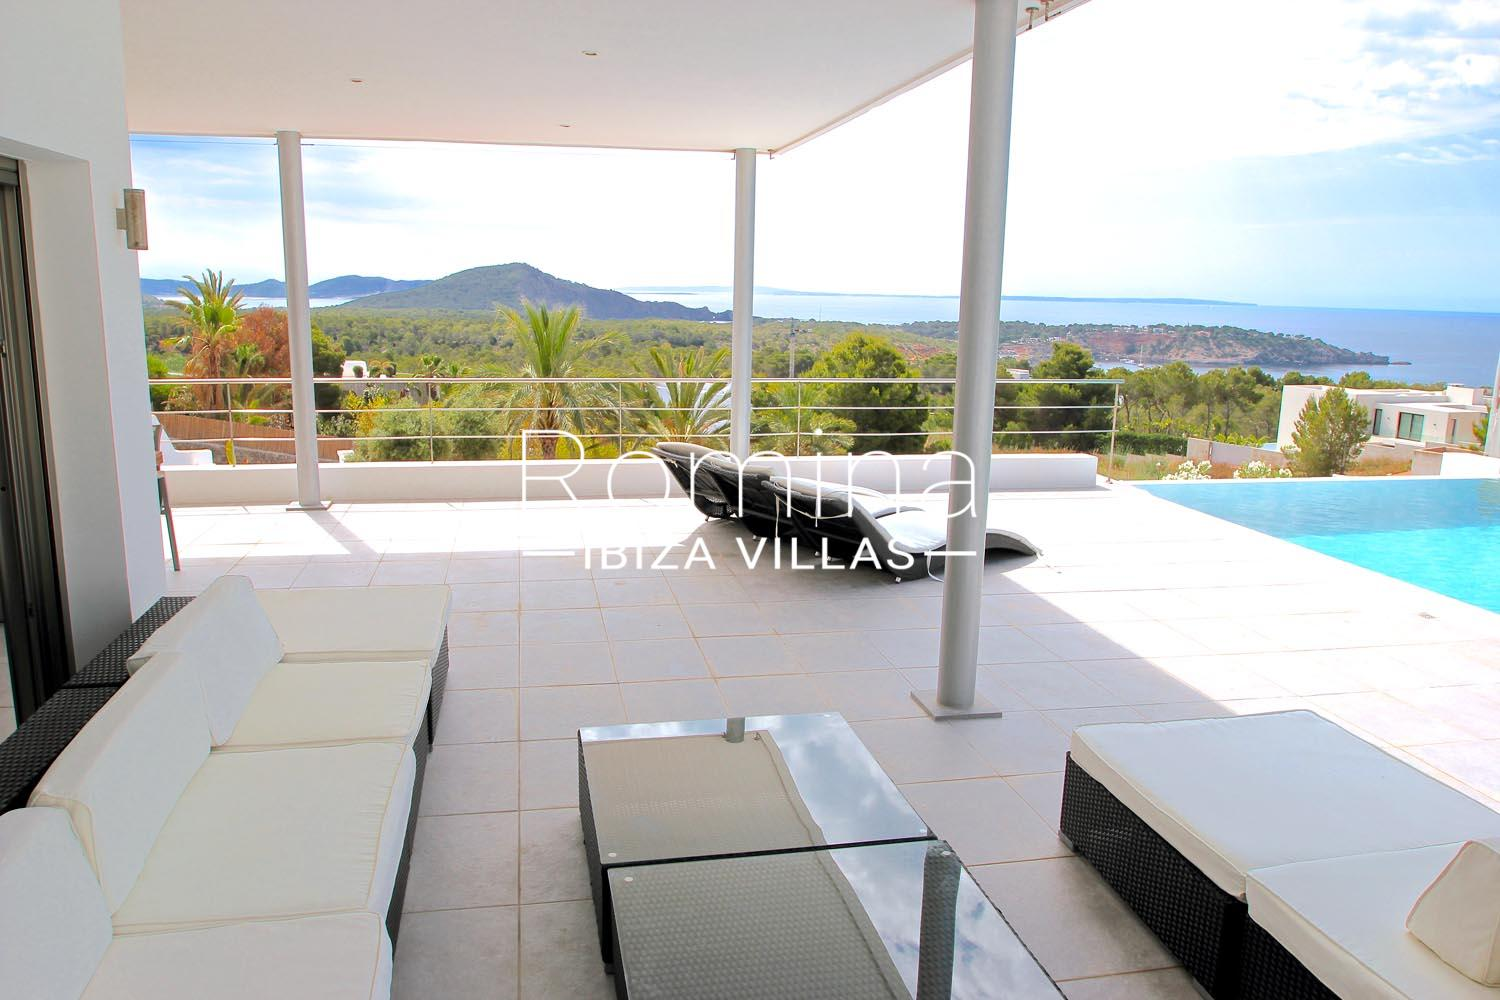 Villa clev1pool terrace lounge sea view romina ibiza villas for Terrace lounge